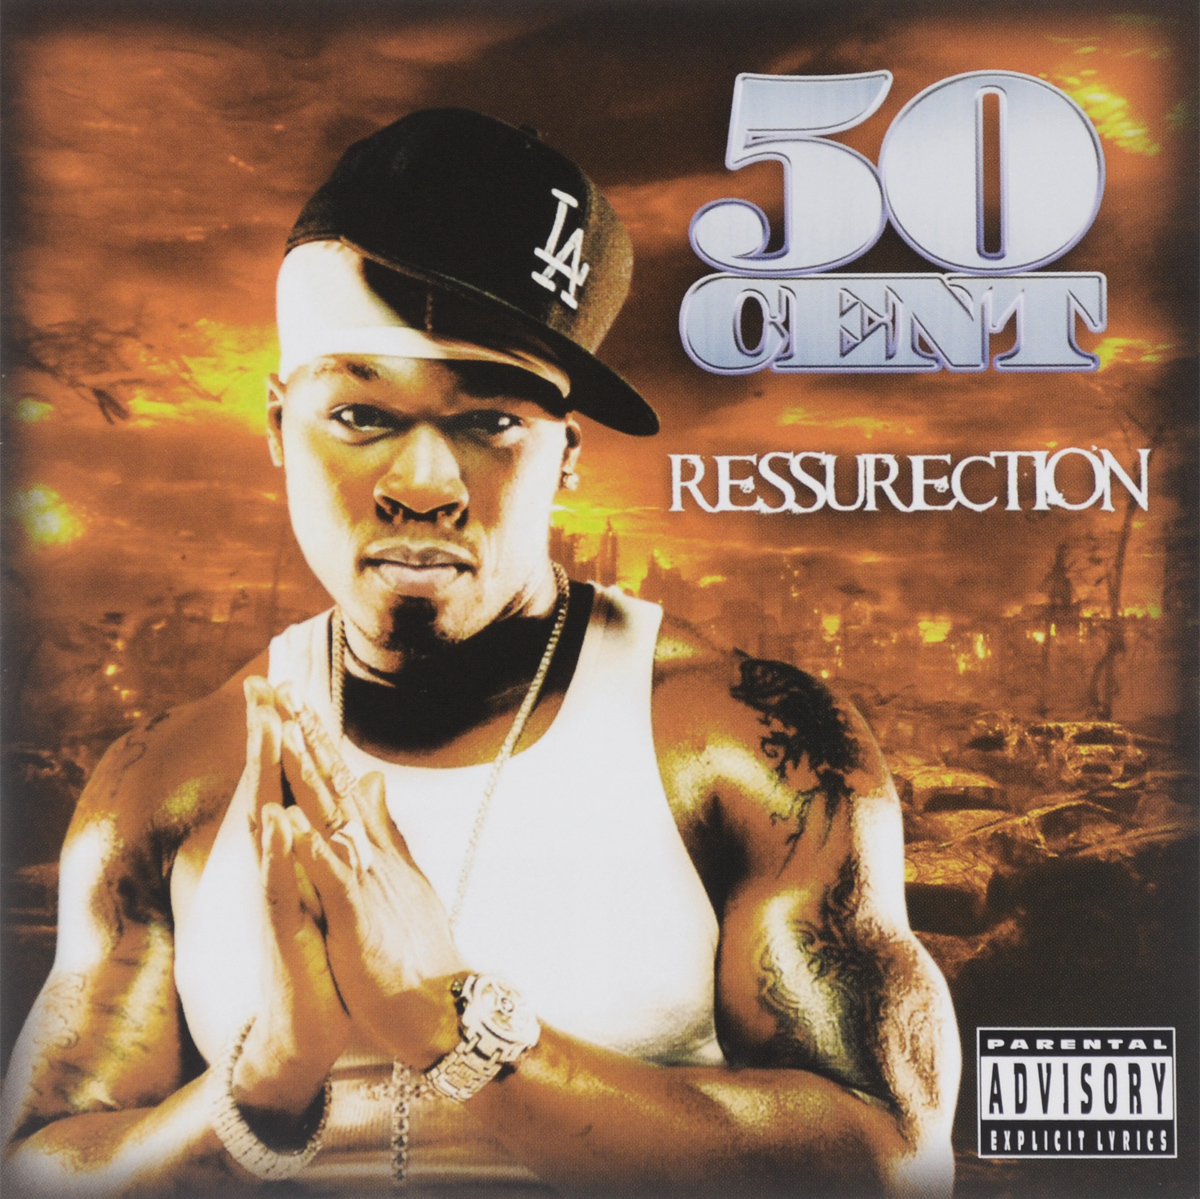 цена на 50 Cent 50 Cent. Ressurection